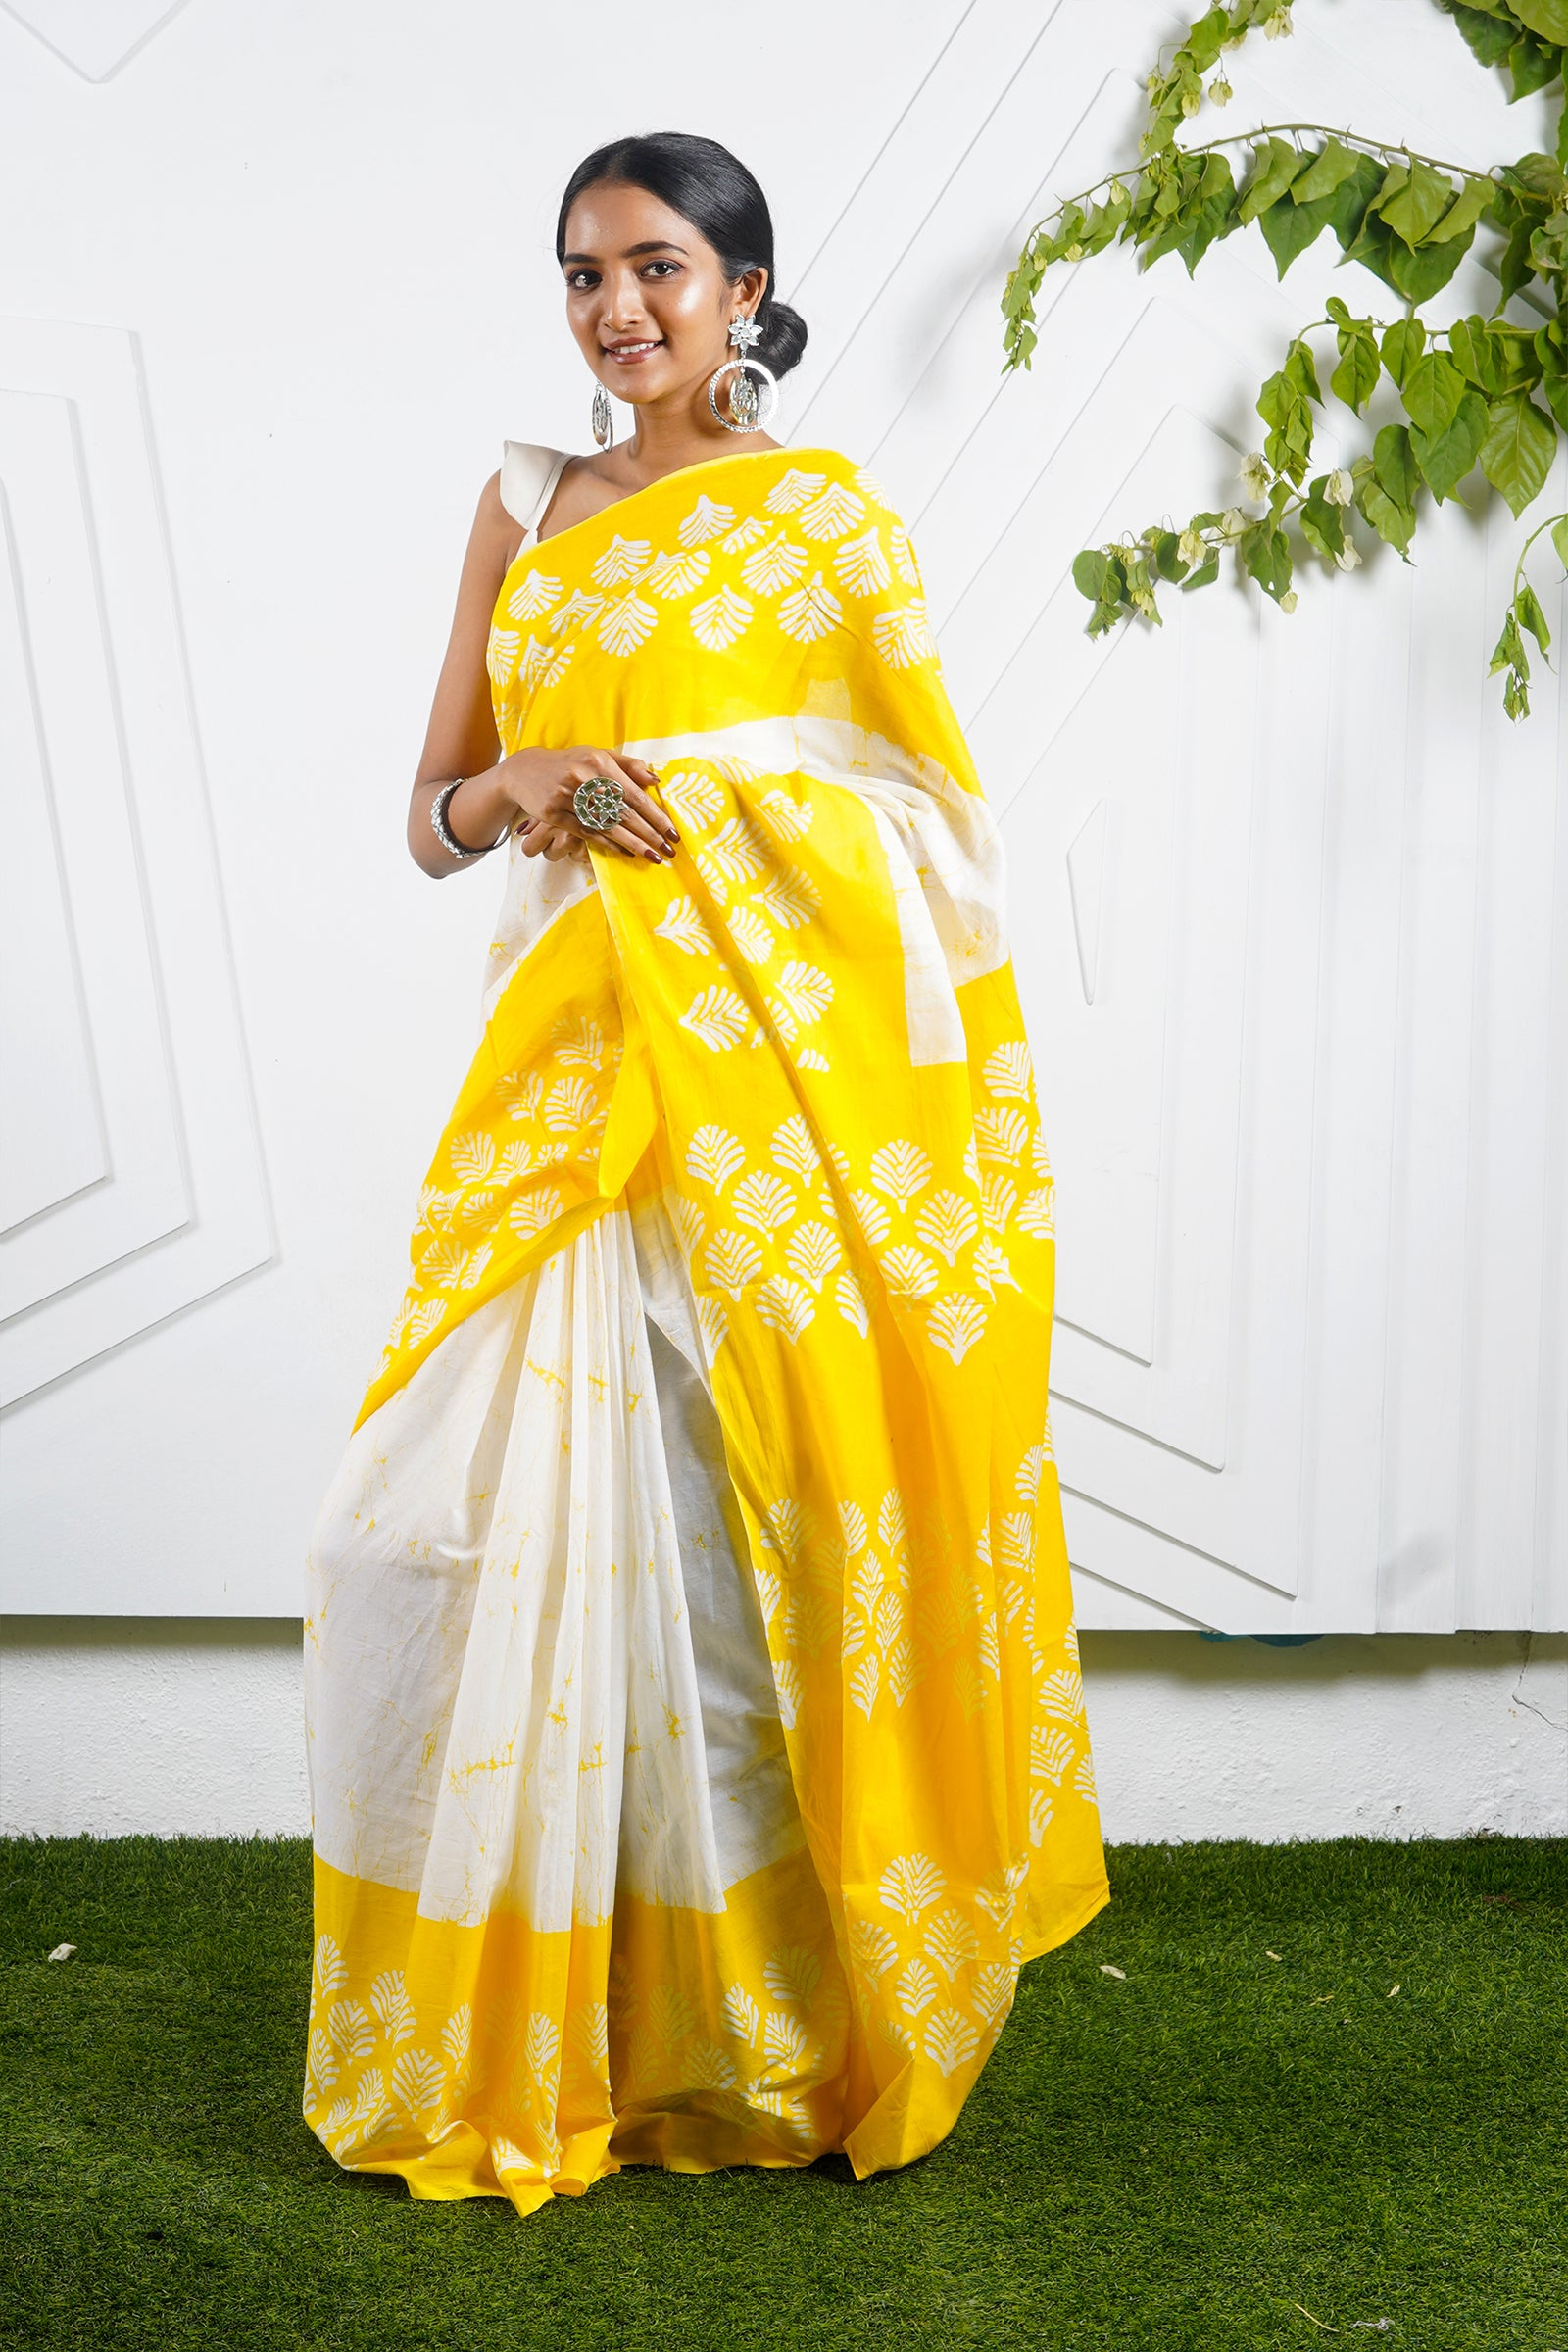 Teejh Baag Yellow & White Hand Block Print Batik Mulmul Cotton Saree